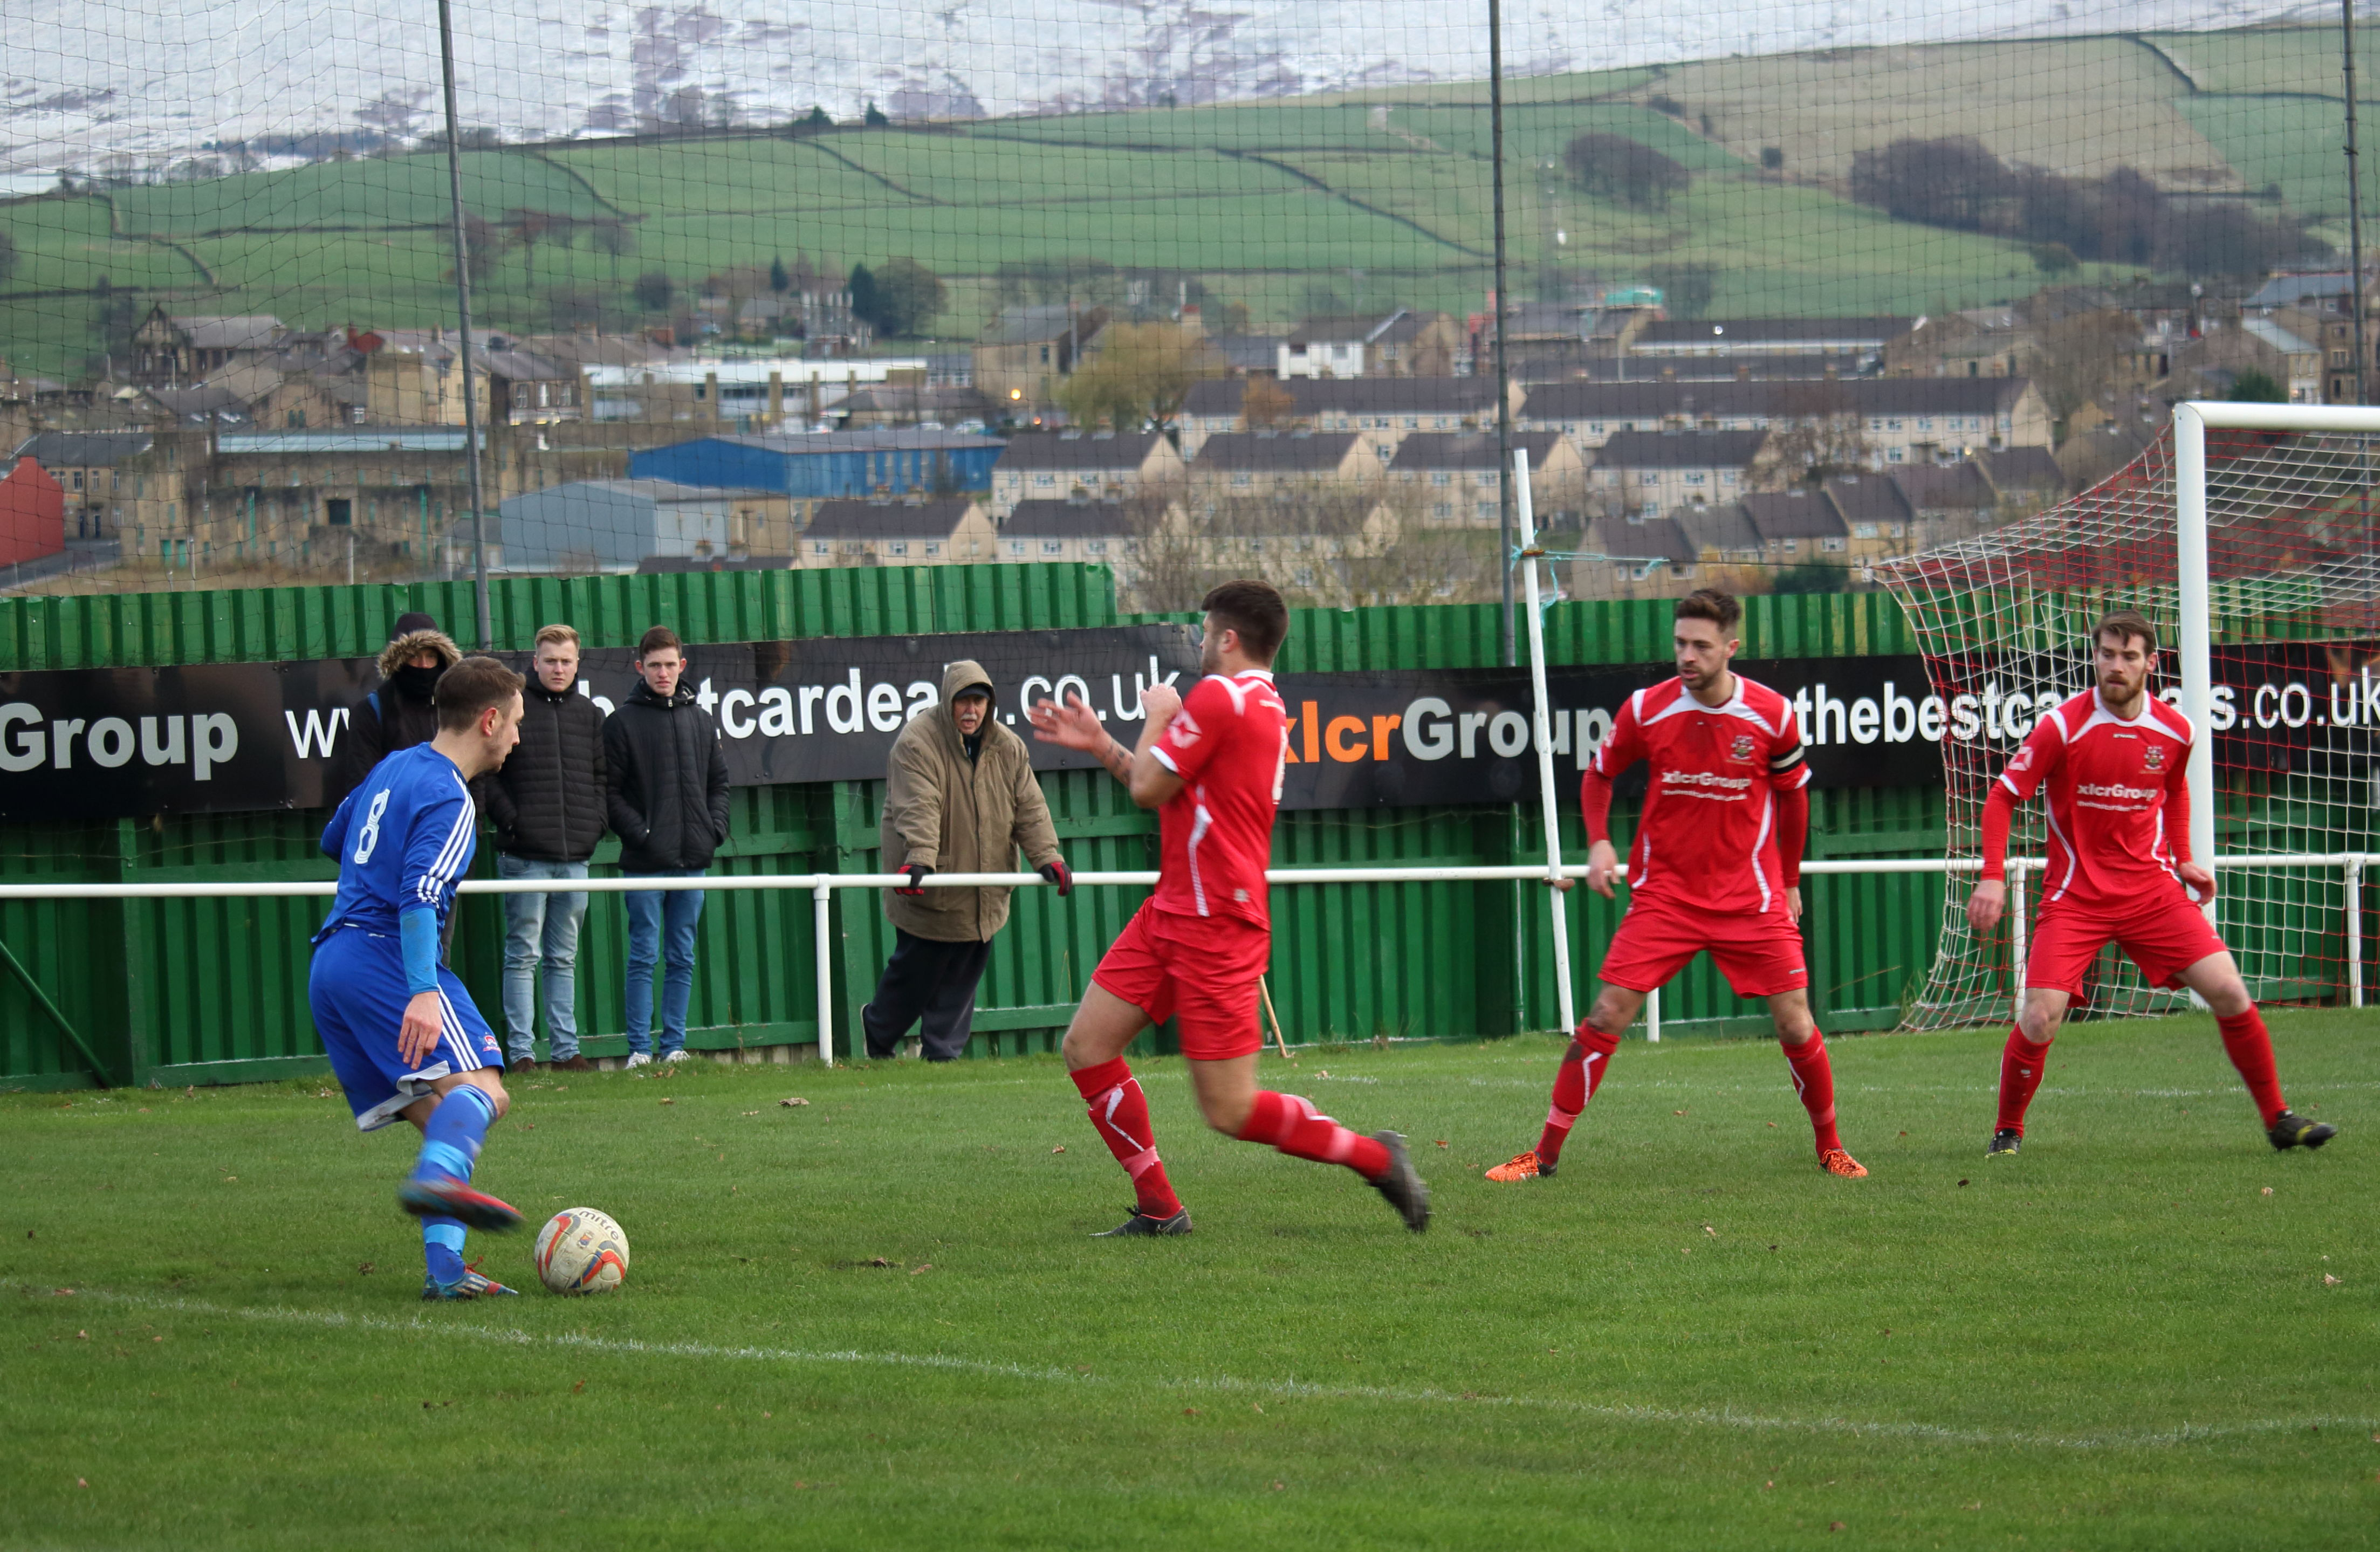 Fa vase success for aycliffe newton news fa vase floridaeventfo Image collections